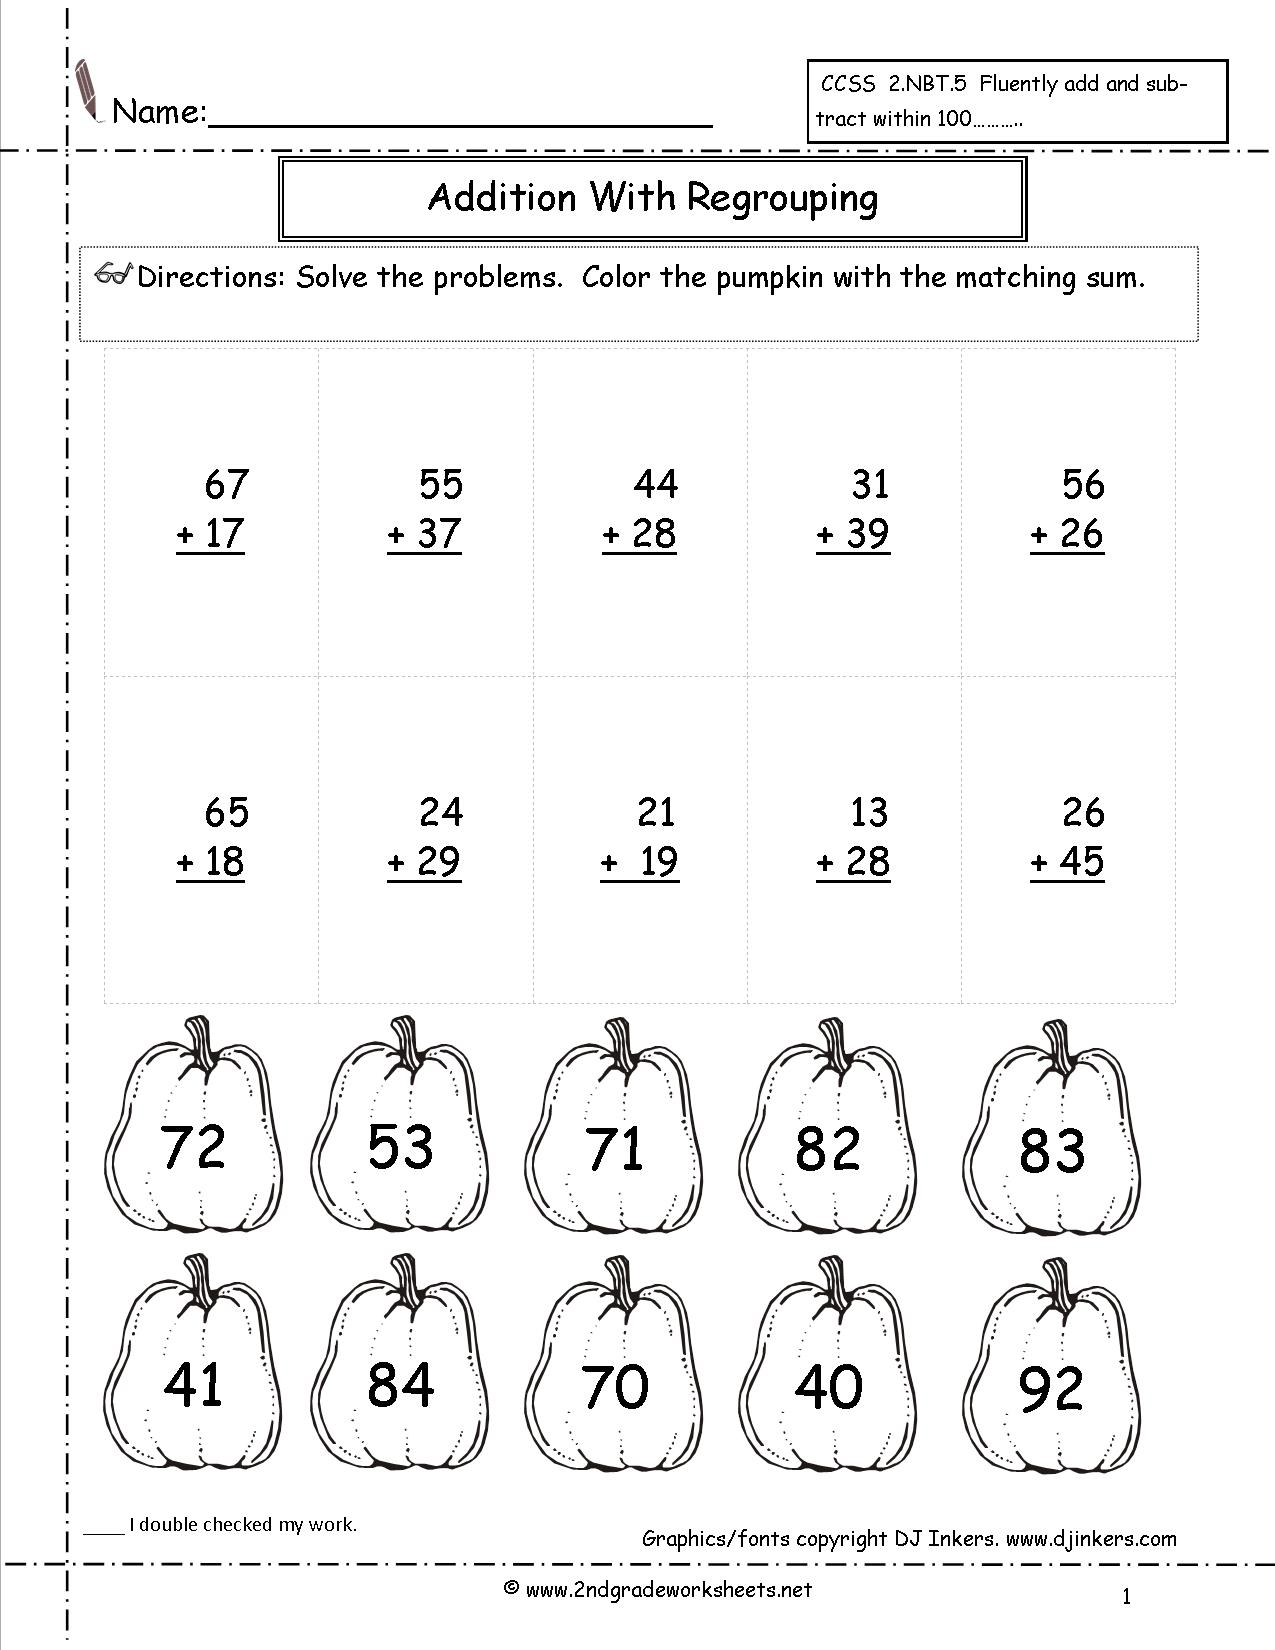 Adding with Regrouping Second Grade